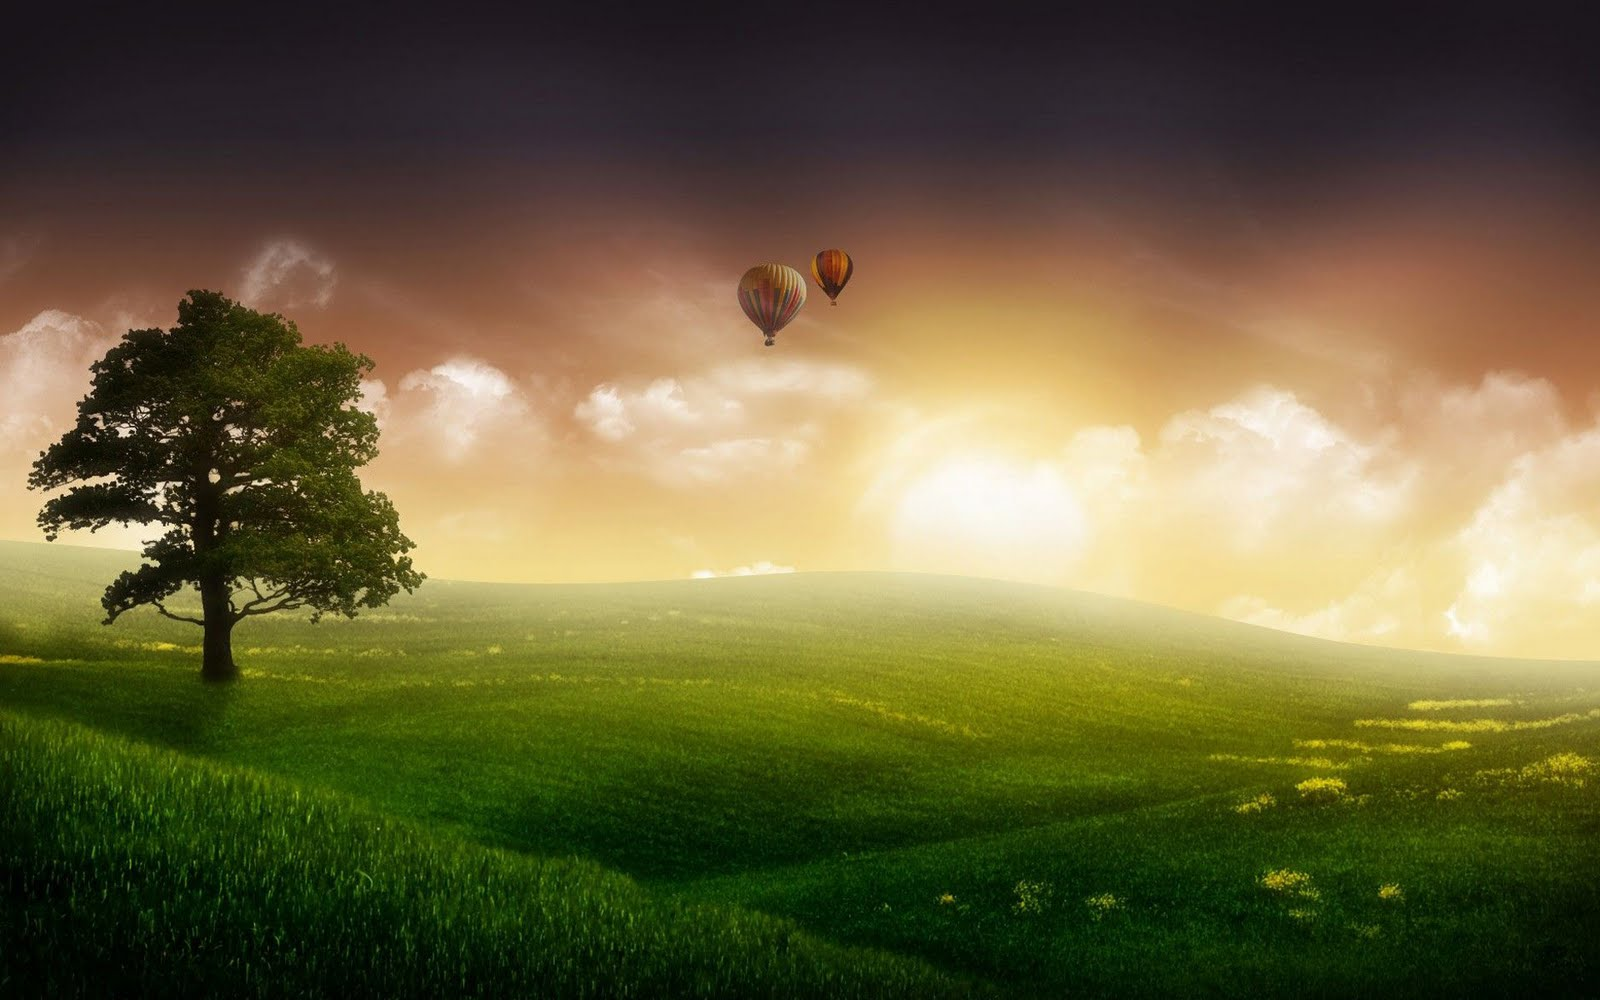 http://1.bp.blogspot.com/-LvhmVMUJmUI/TtpDUw1foQI/AAAAAAAABFU/EIYmBhTF-3U/s1600/cool-desktop-wallpaper-Hot_air_balloons_-_Windows_7_desktop_backgrounds.jpg